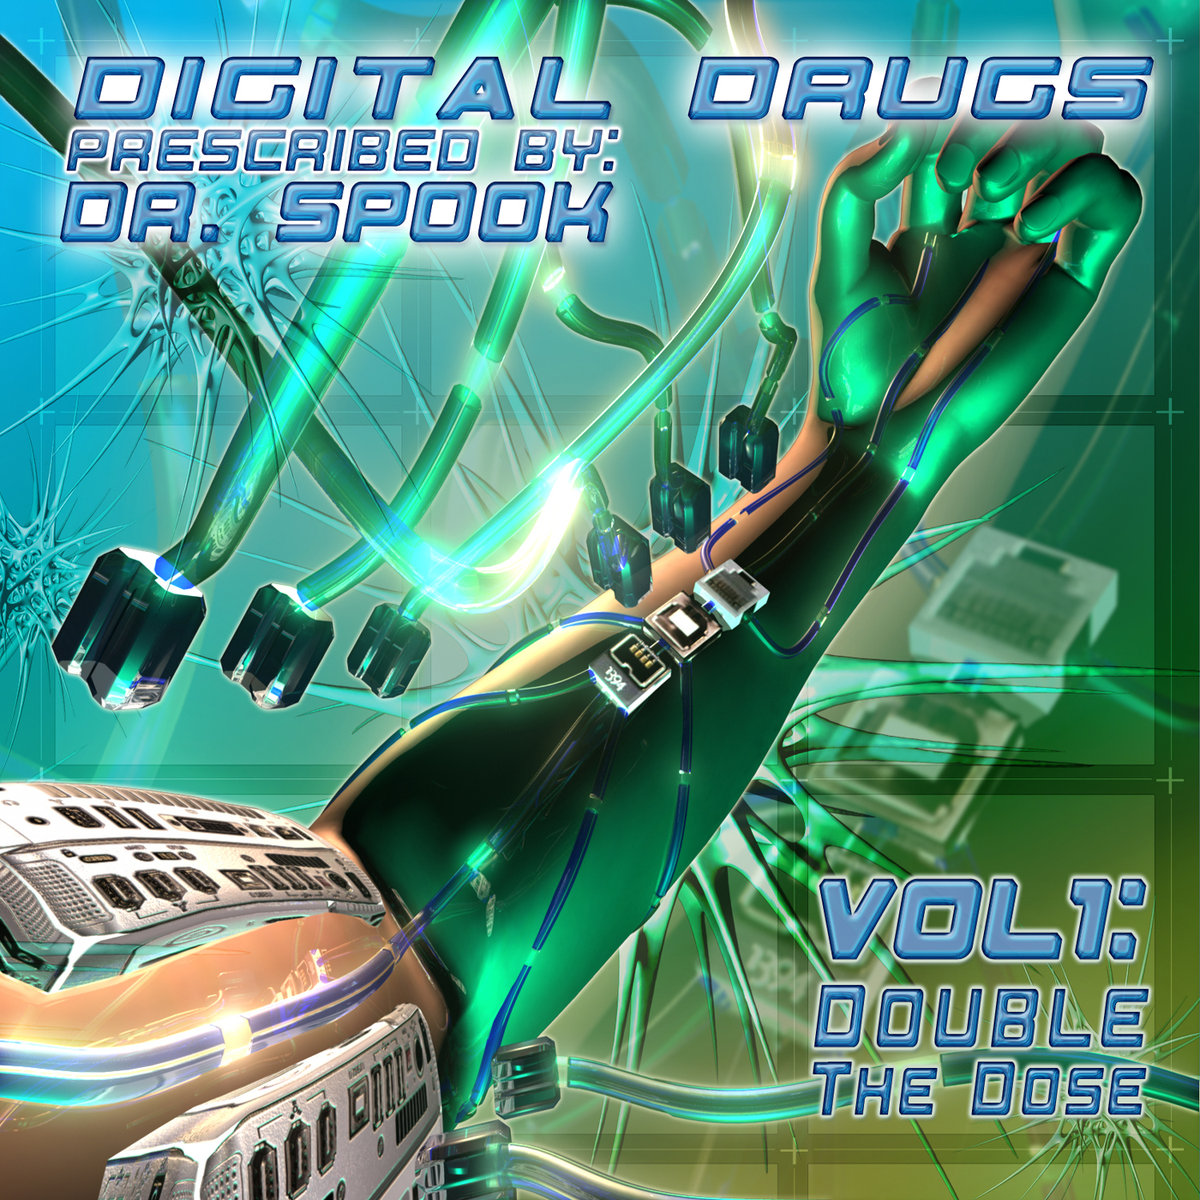 Bus - Bagdad Plasma @ 'Various Artists - Digital Drugs Vol.1: Double the Dose (Prescribed by Dr. Spook)' album (electronic, goa)